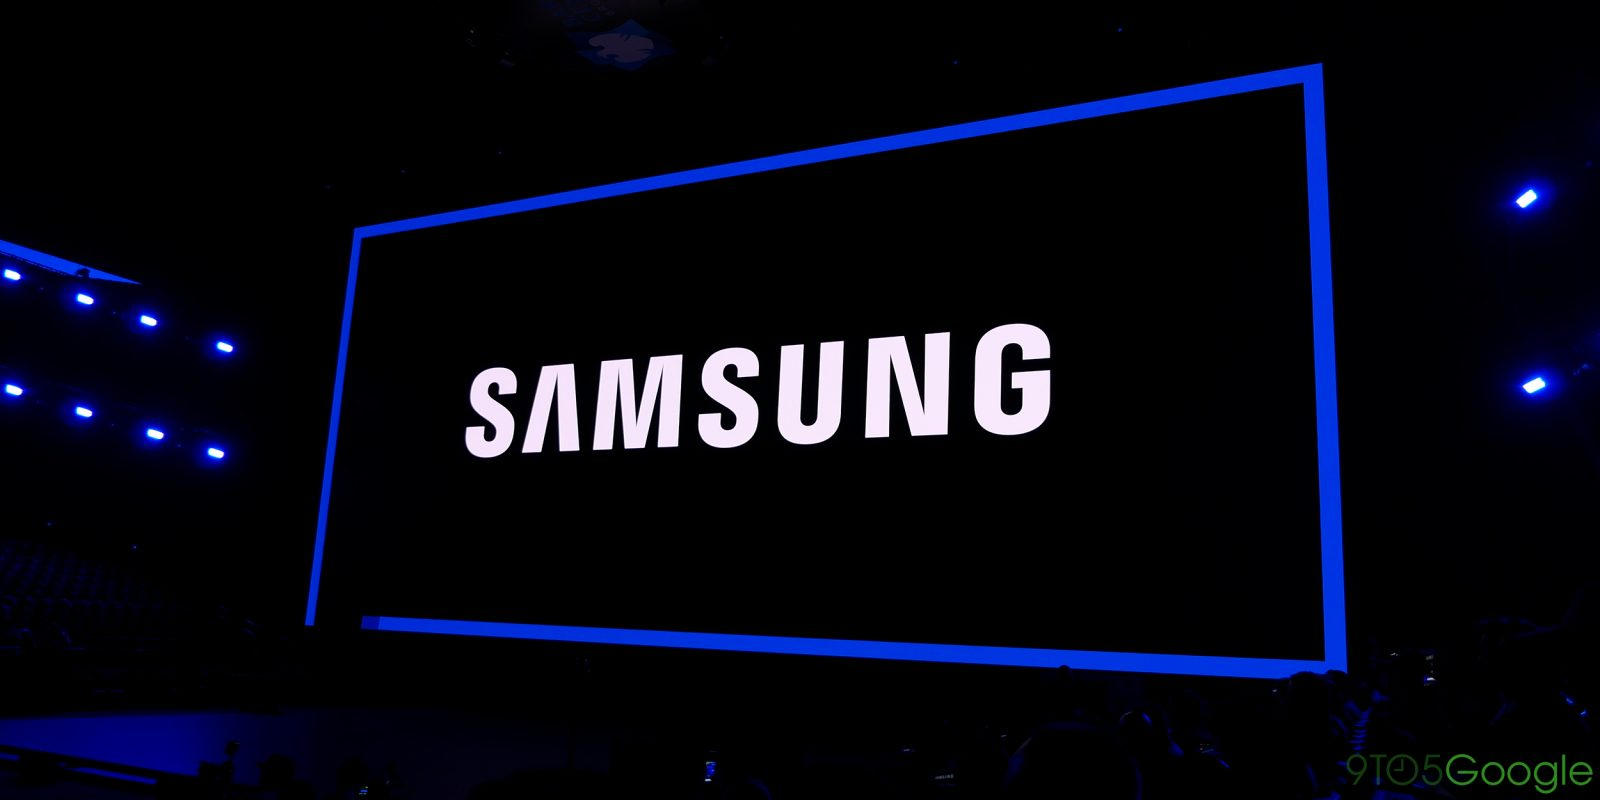 Samsung 'hopes' to use graphene batteries by 2021 - 9to5Google